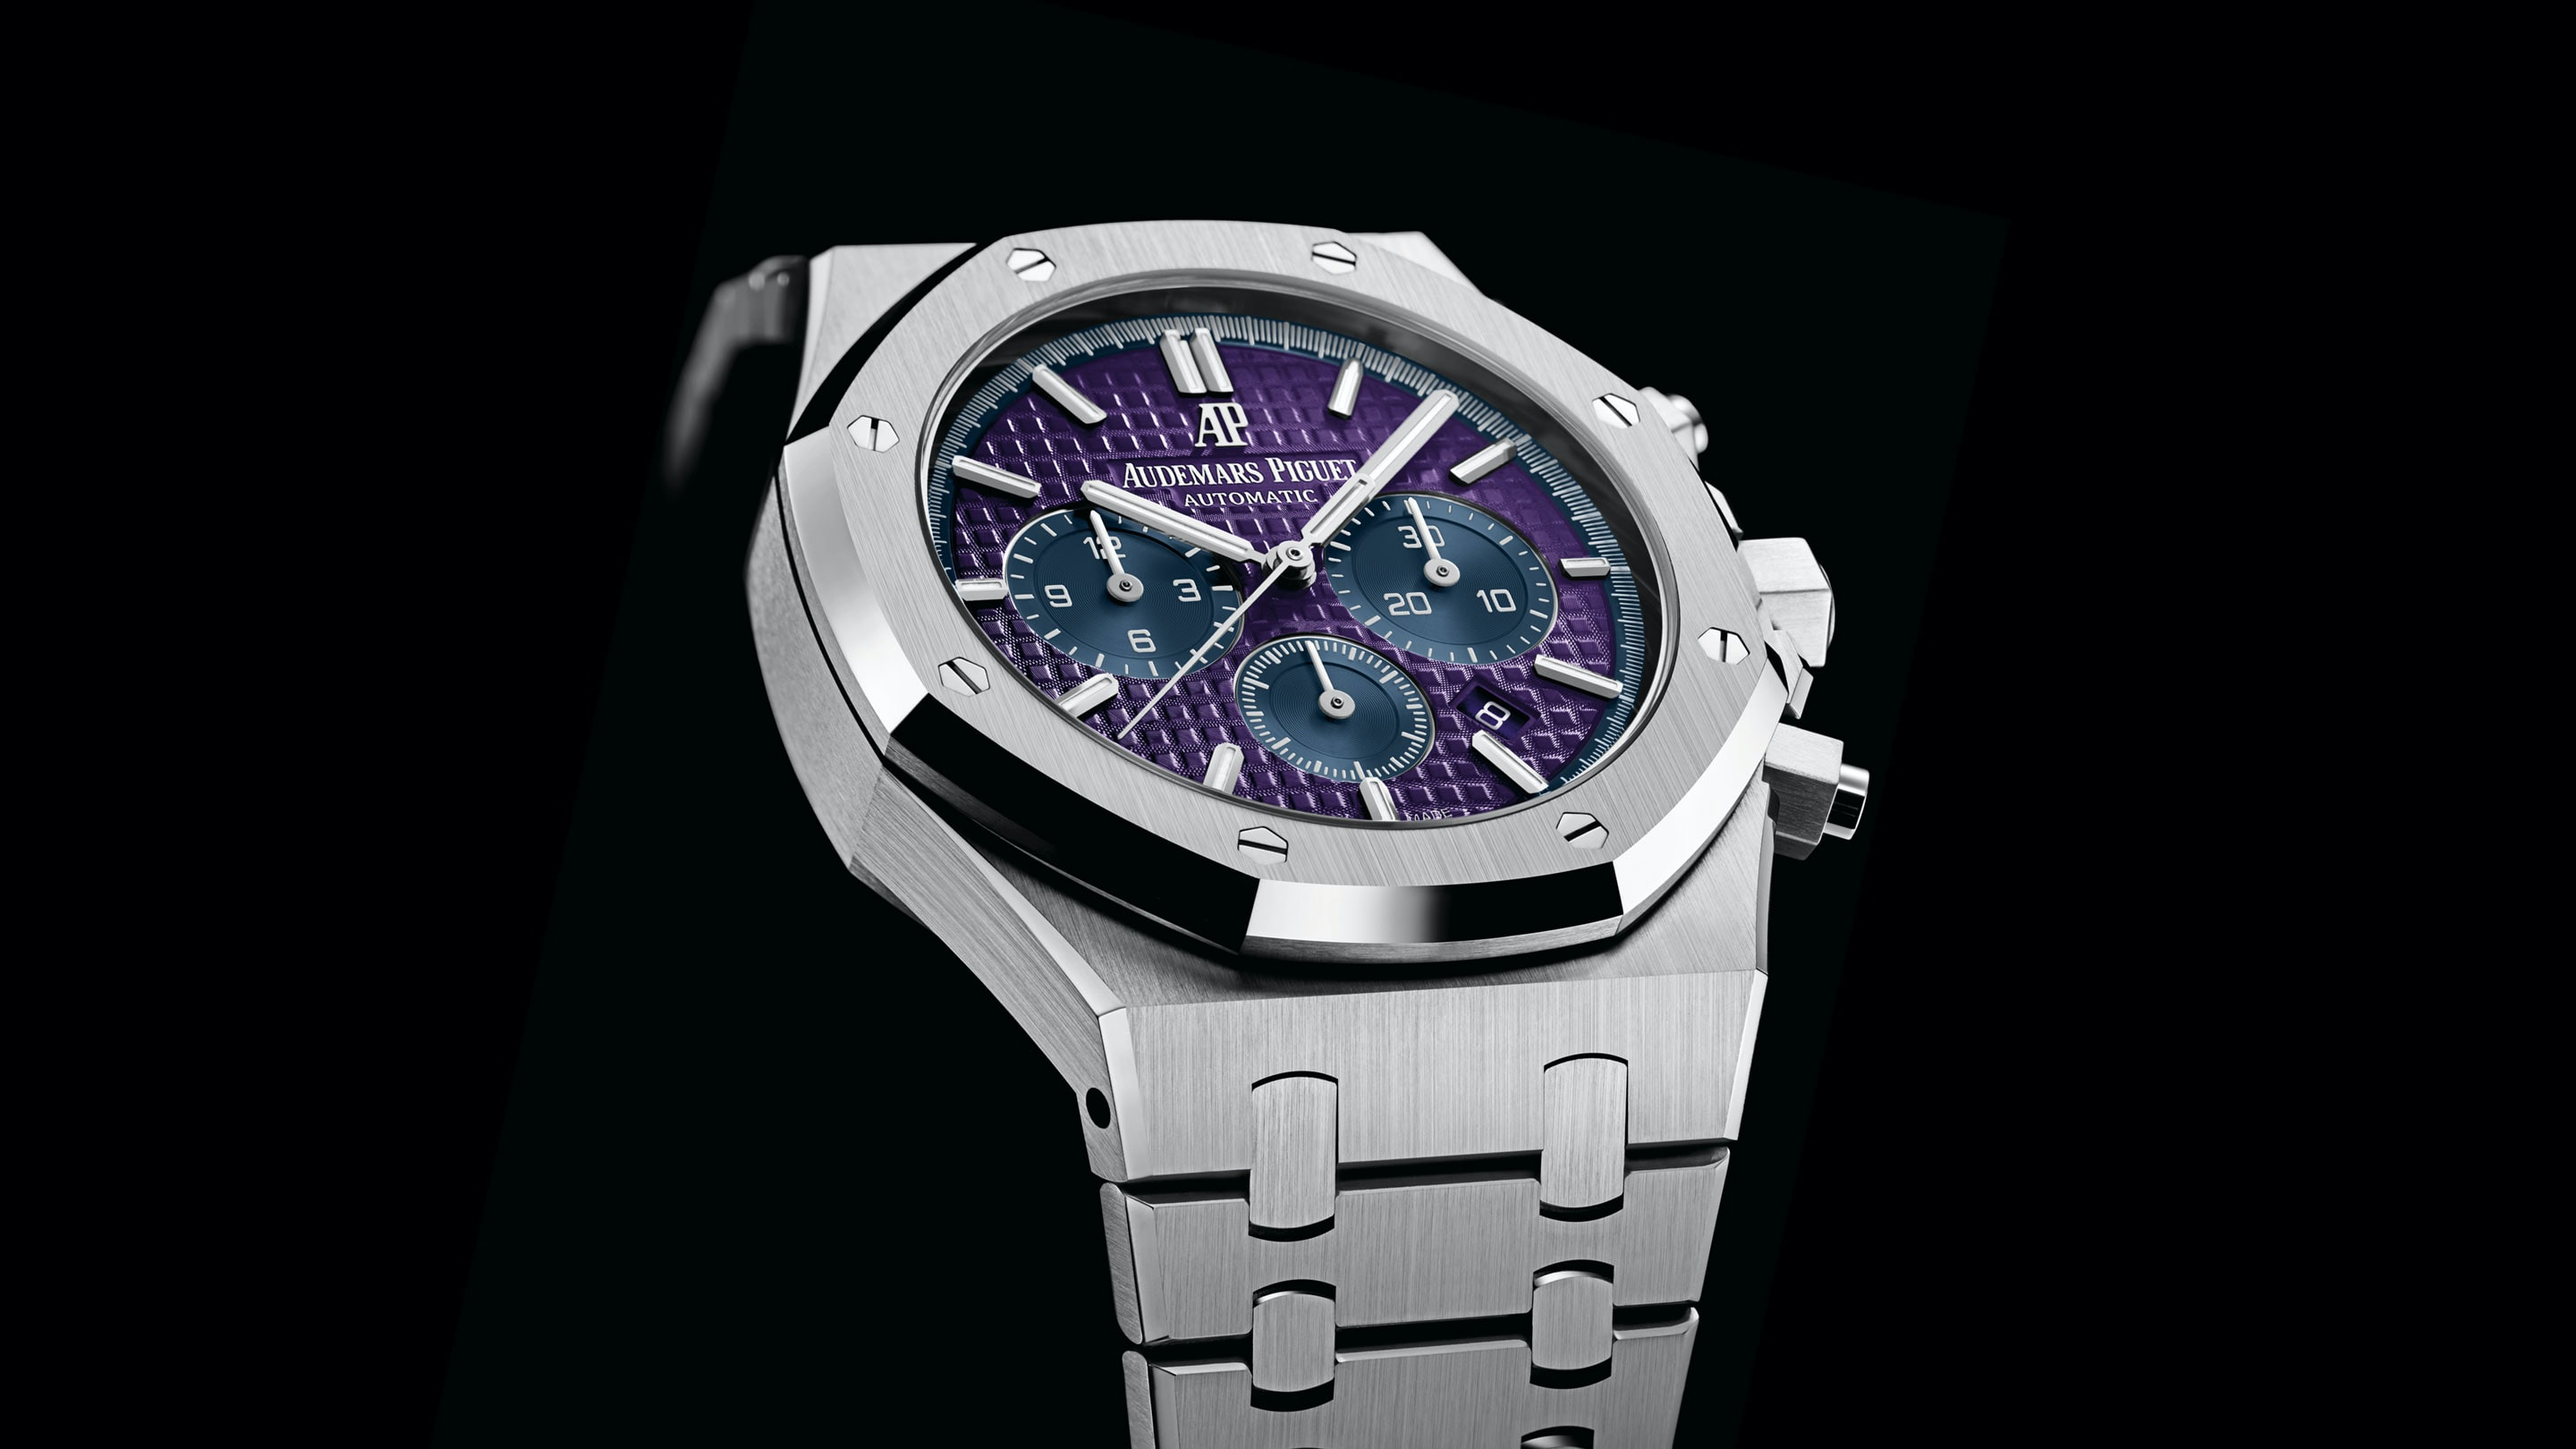 Auction Report: Audemars Piguet Will Sell A Unique Royal Oak Chronograph To Benefit Clean Water Charity One Drop